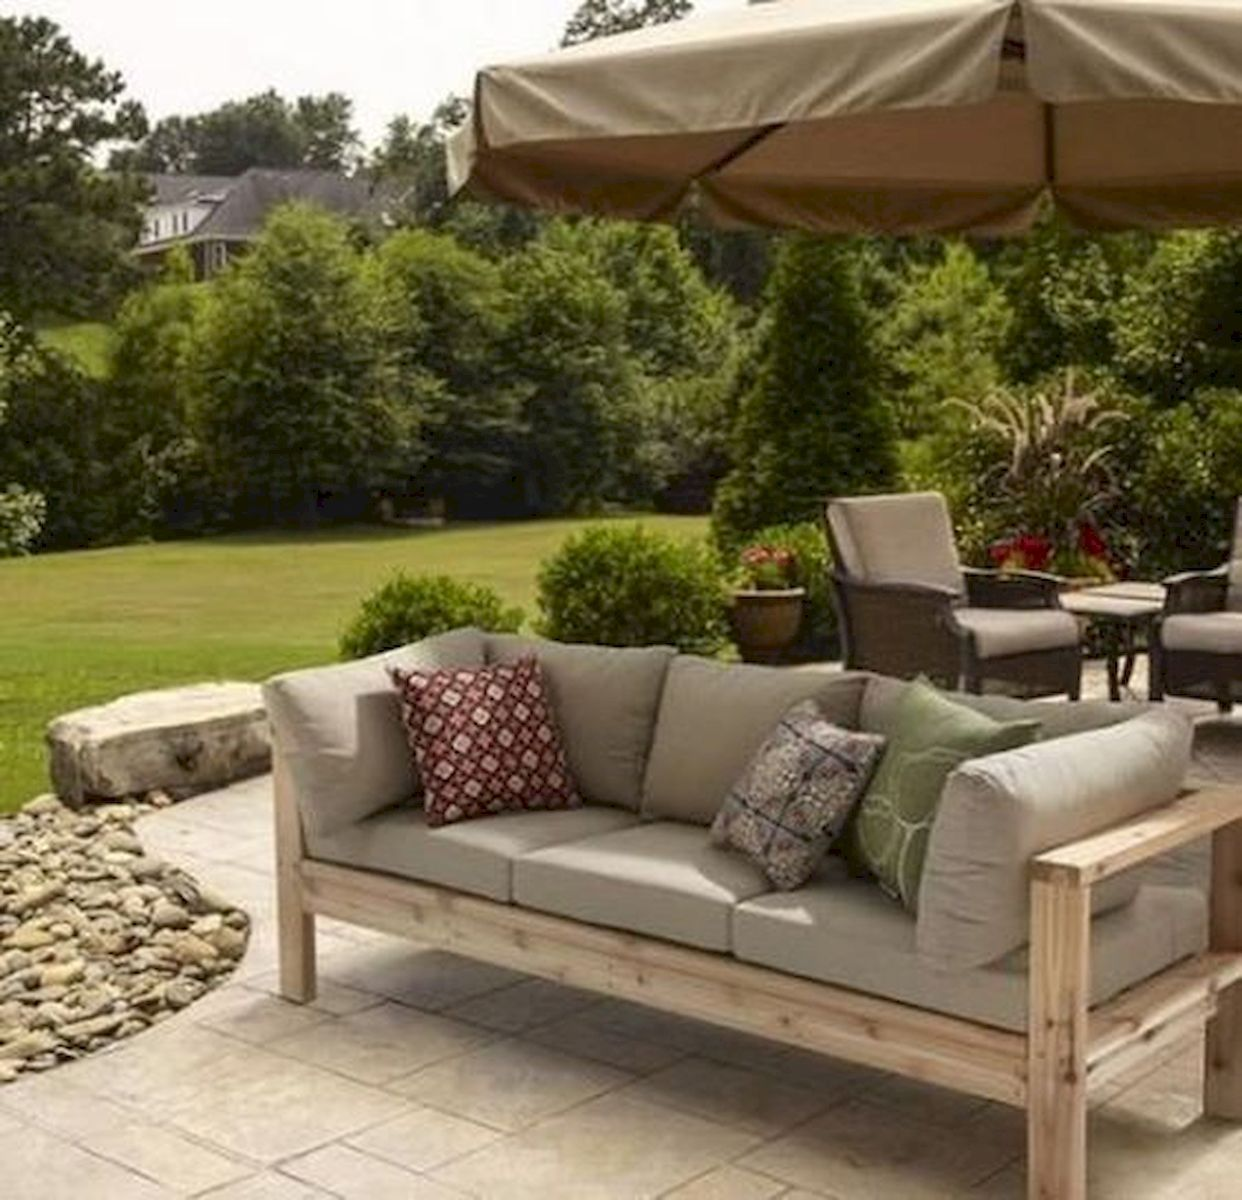 40 creative diy outdoor bench ideas for backyard and front